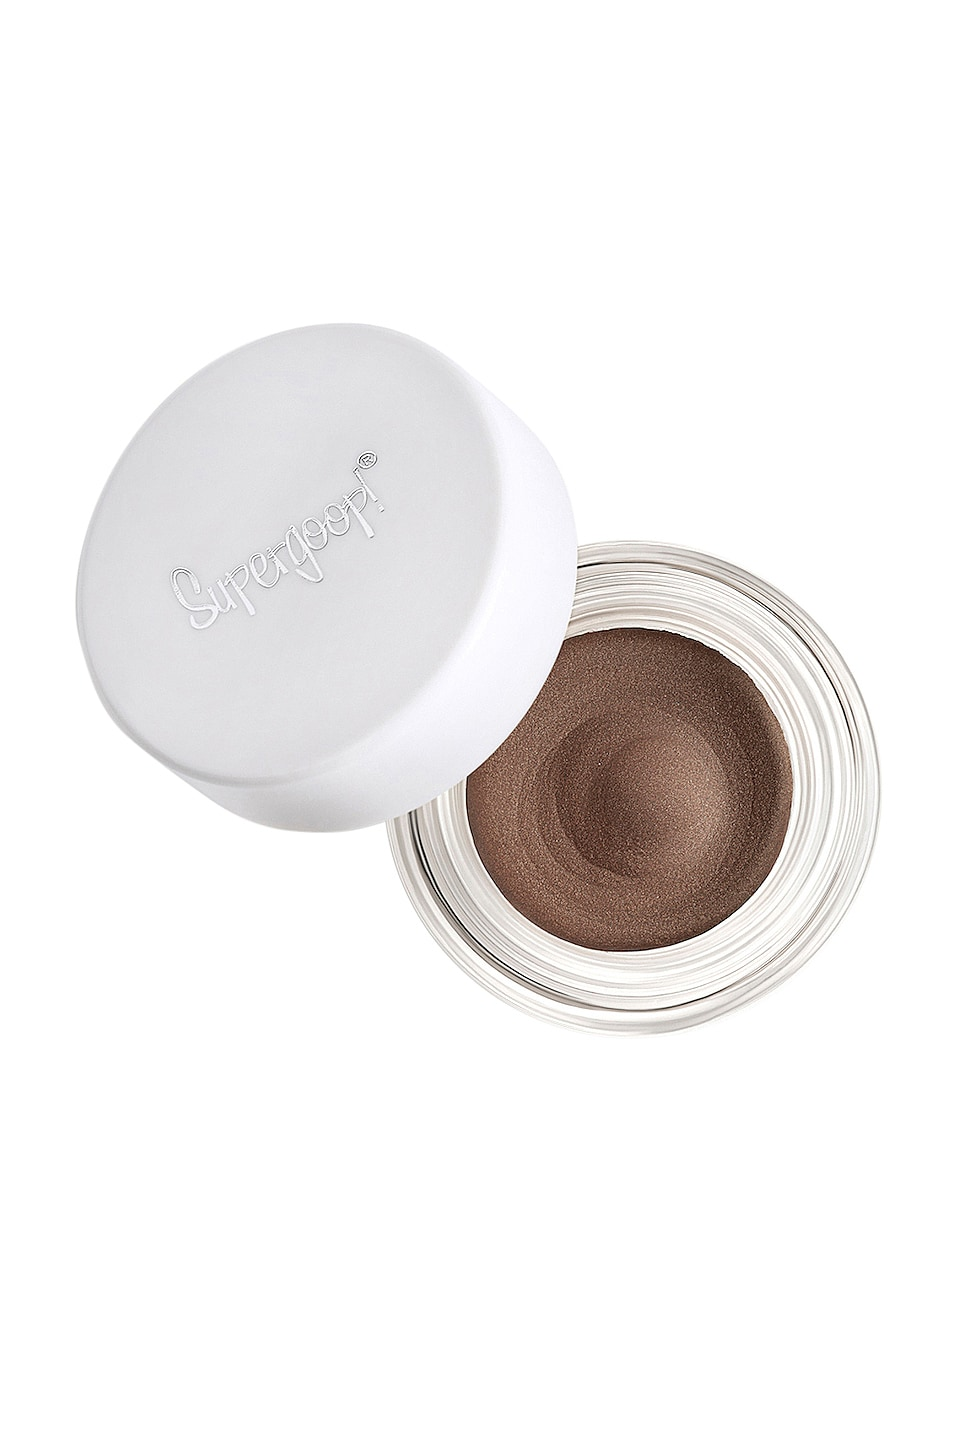 Supergoop! Shimmer Shade SPF 30 in Sunset